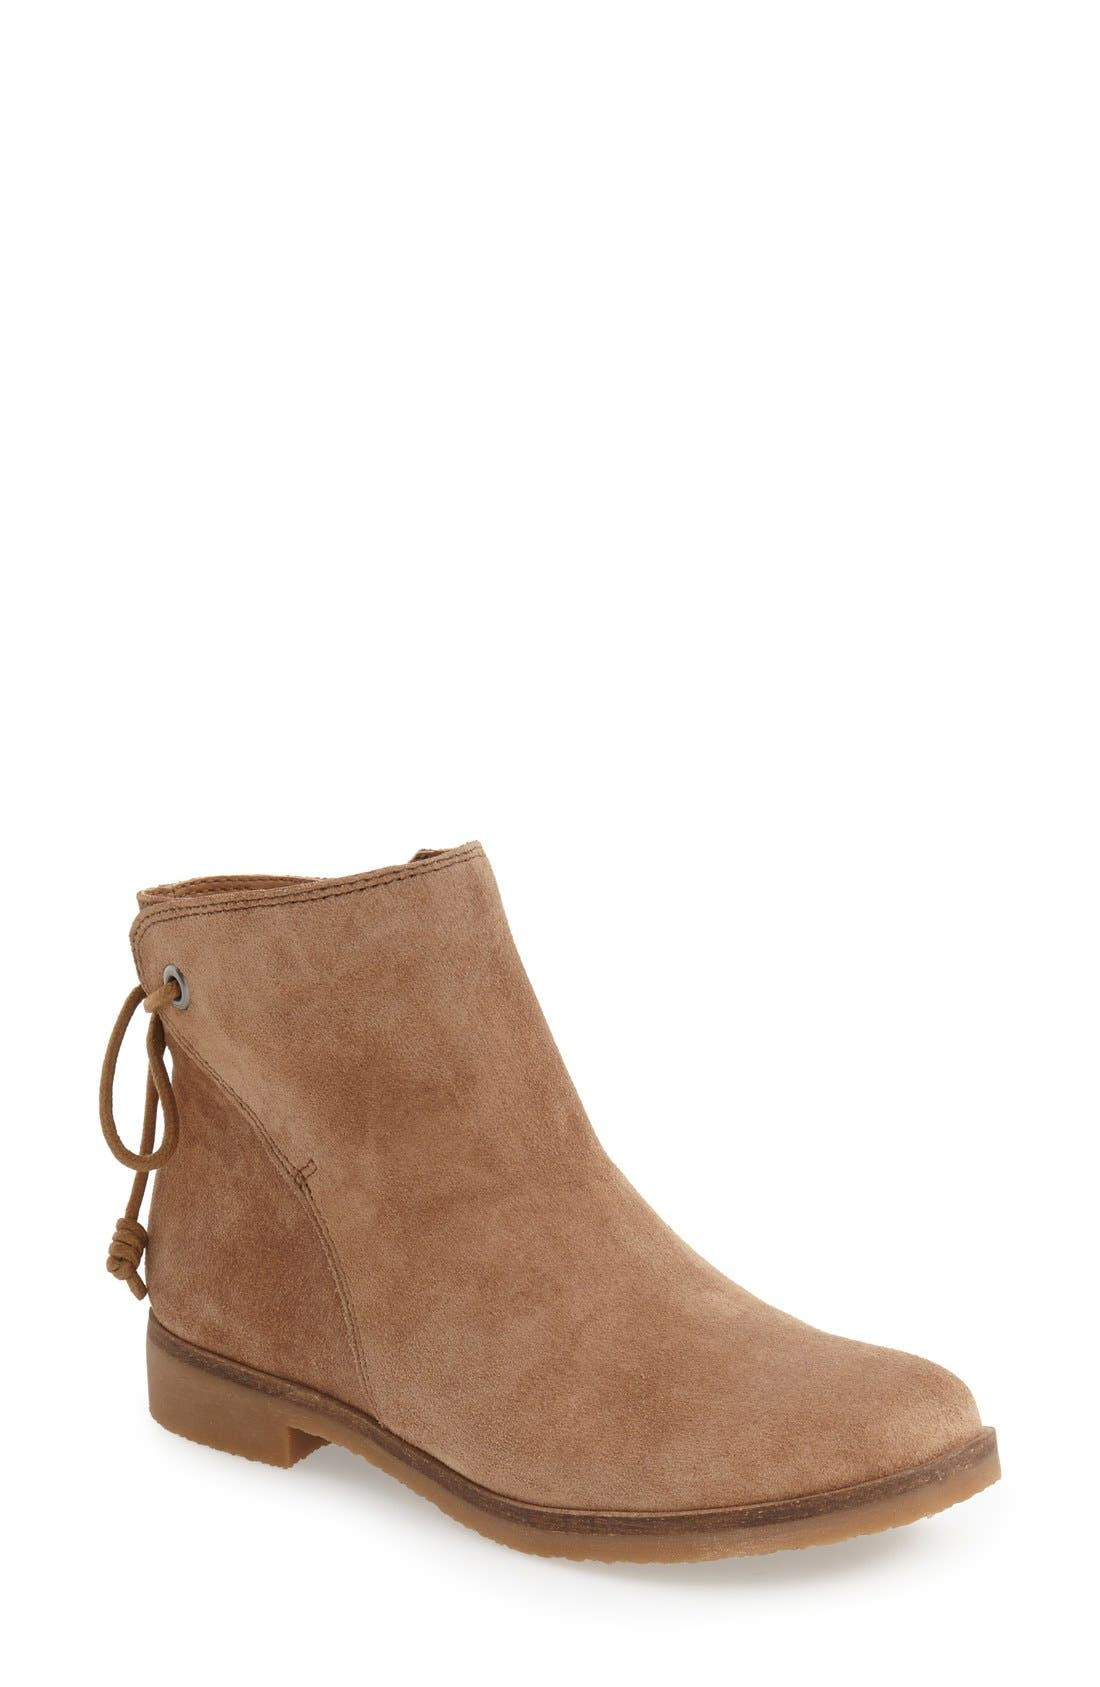 Main Image - Lucky Brand 'Gwenore' Bootie (Women)